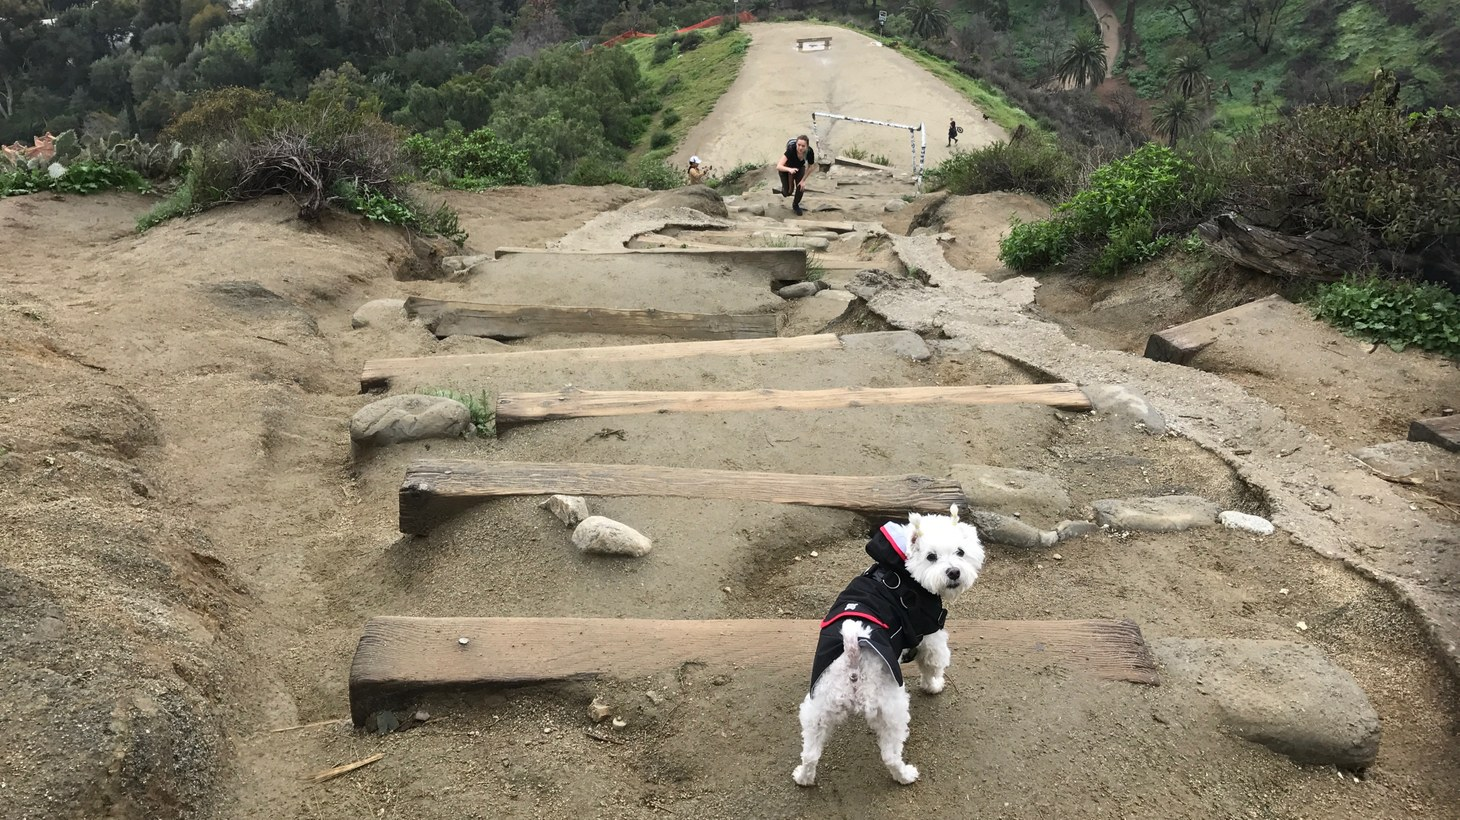 Soo Kim submitted photos of her dog Einstein for the 2019 time capsule. Here's the little guy at Runyon Canyon.